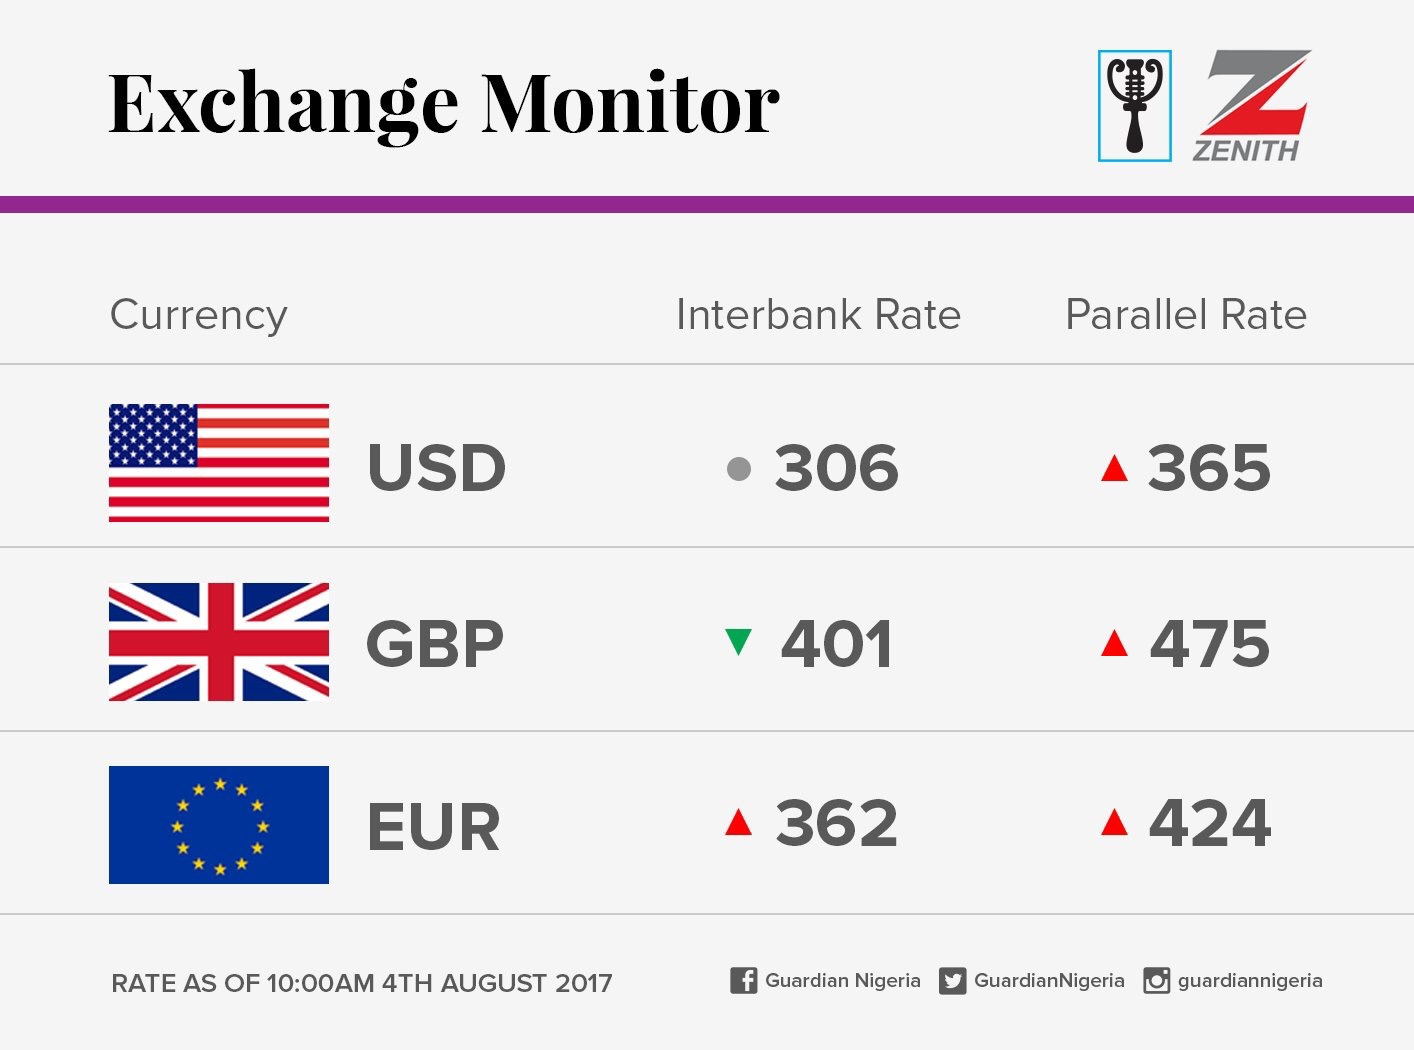 Exchange Rate For 4th August 2017